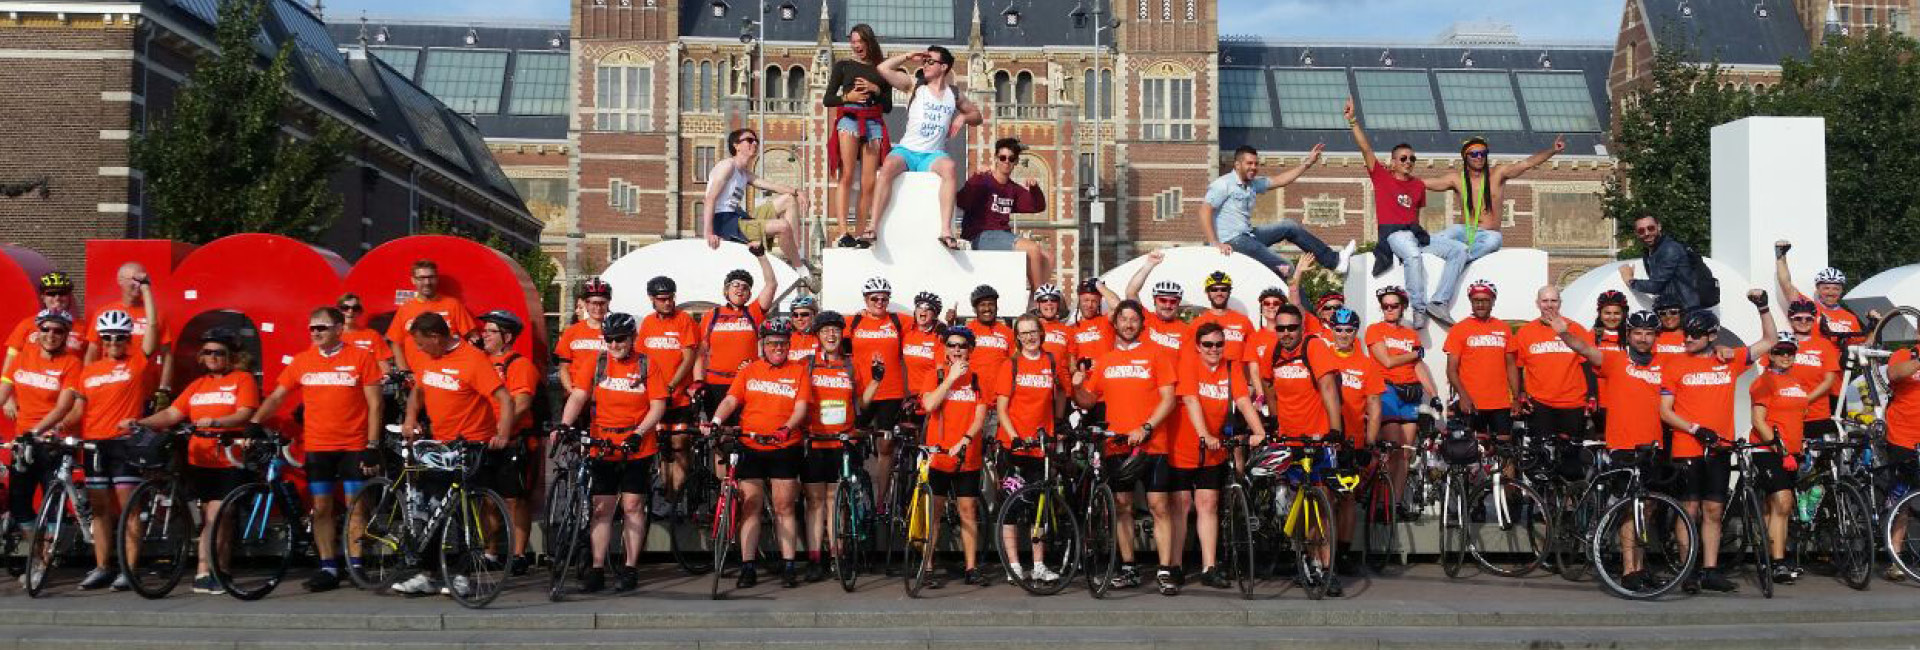 London to Amsterdam 2019 - The Myton Hospices - Challenge Event